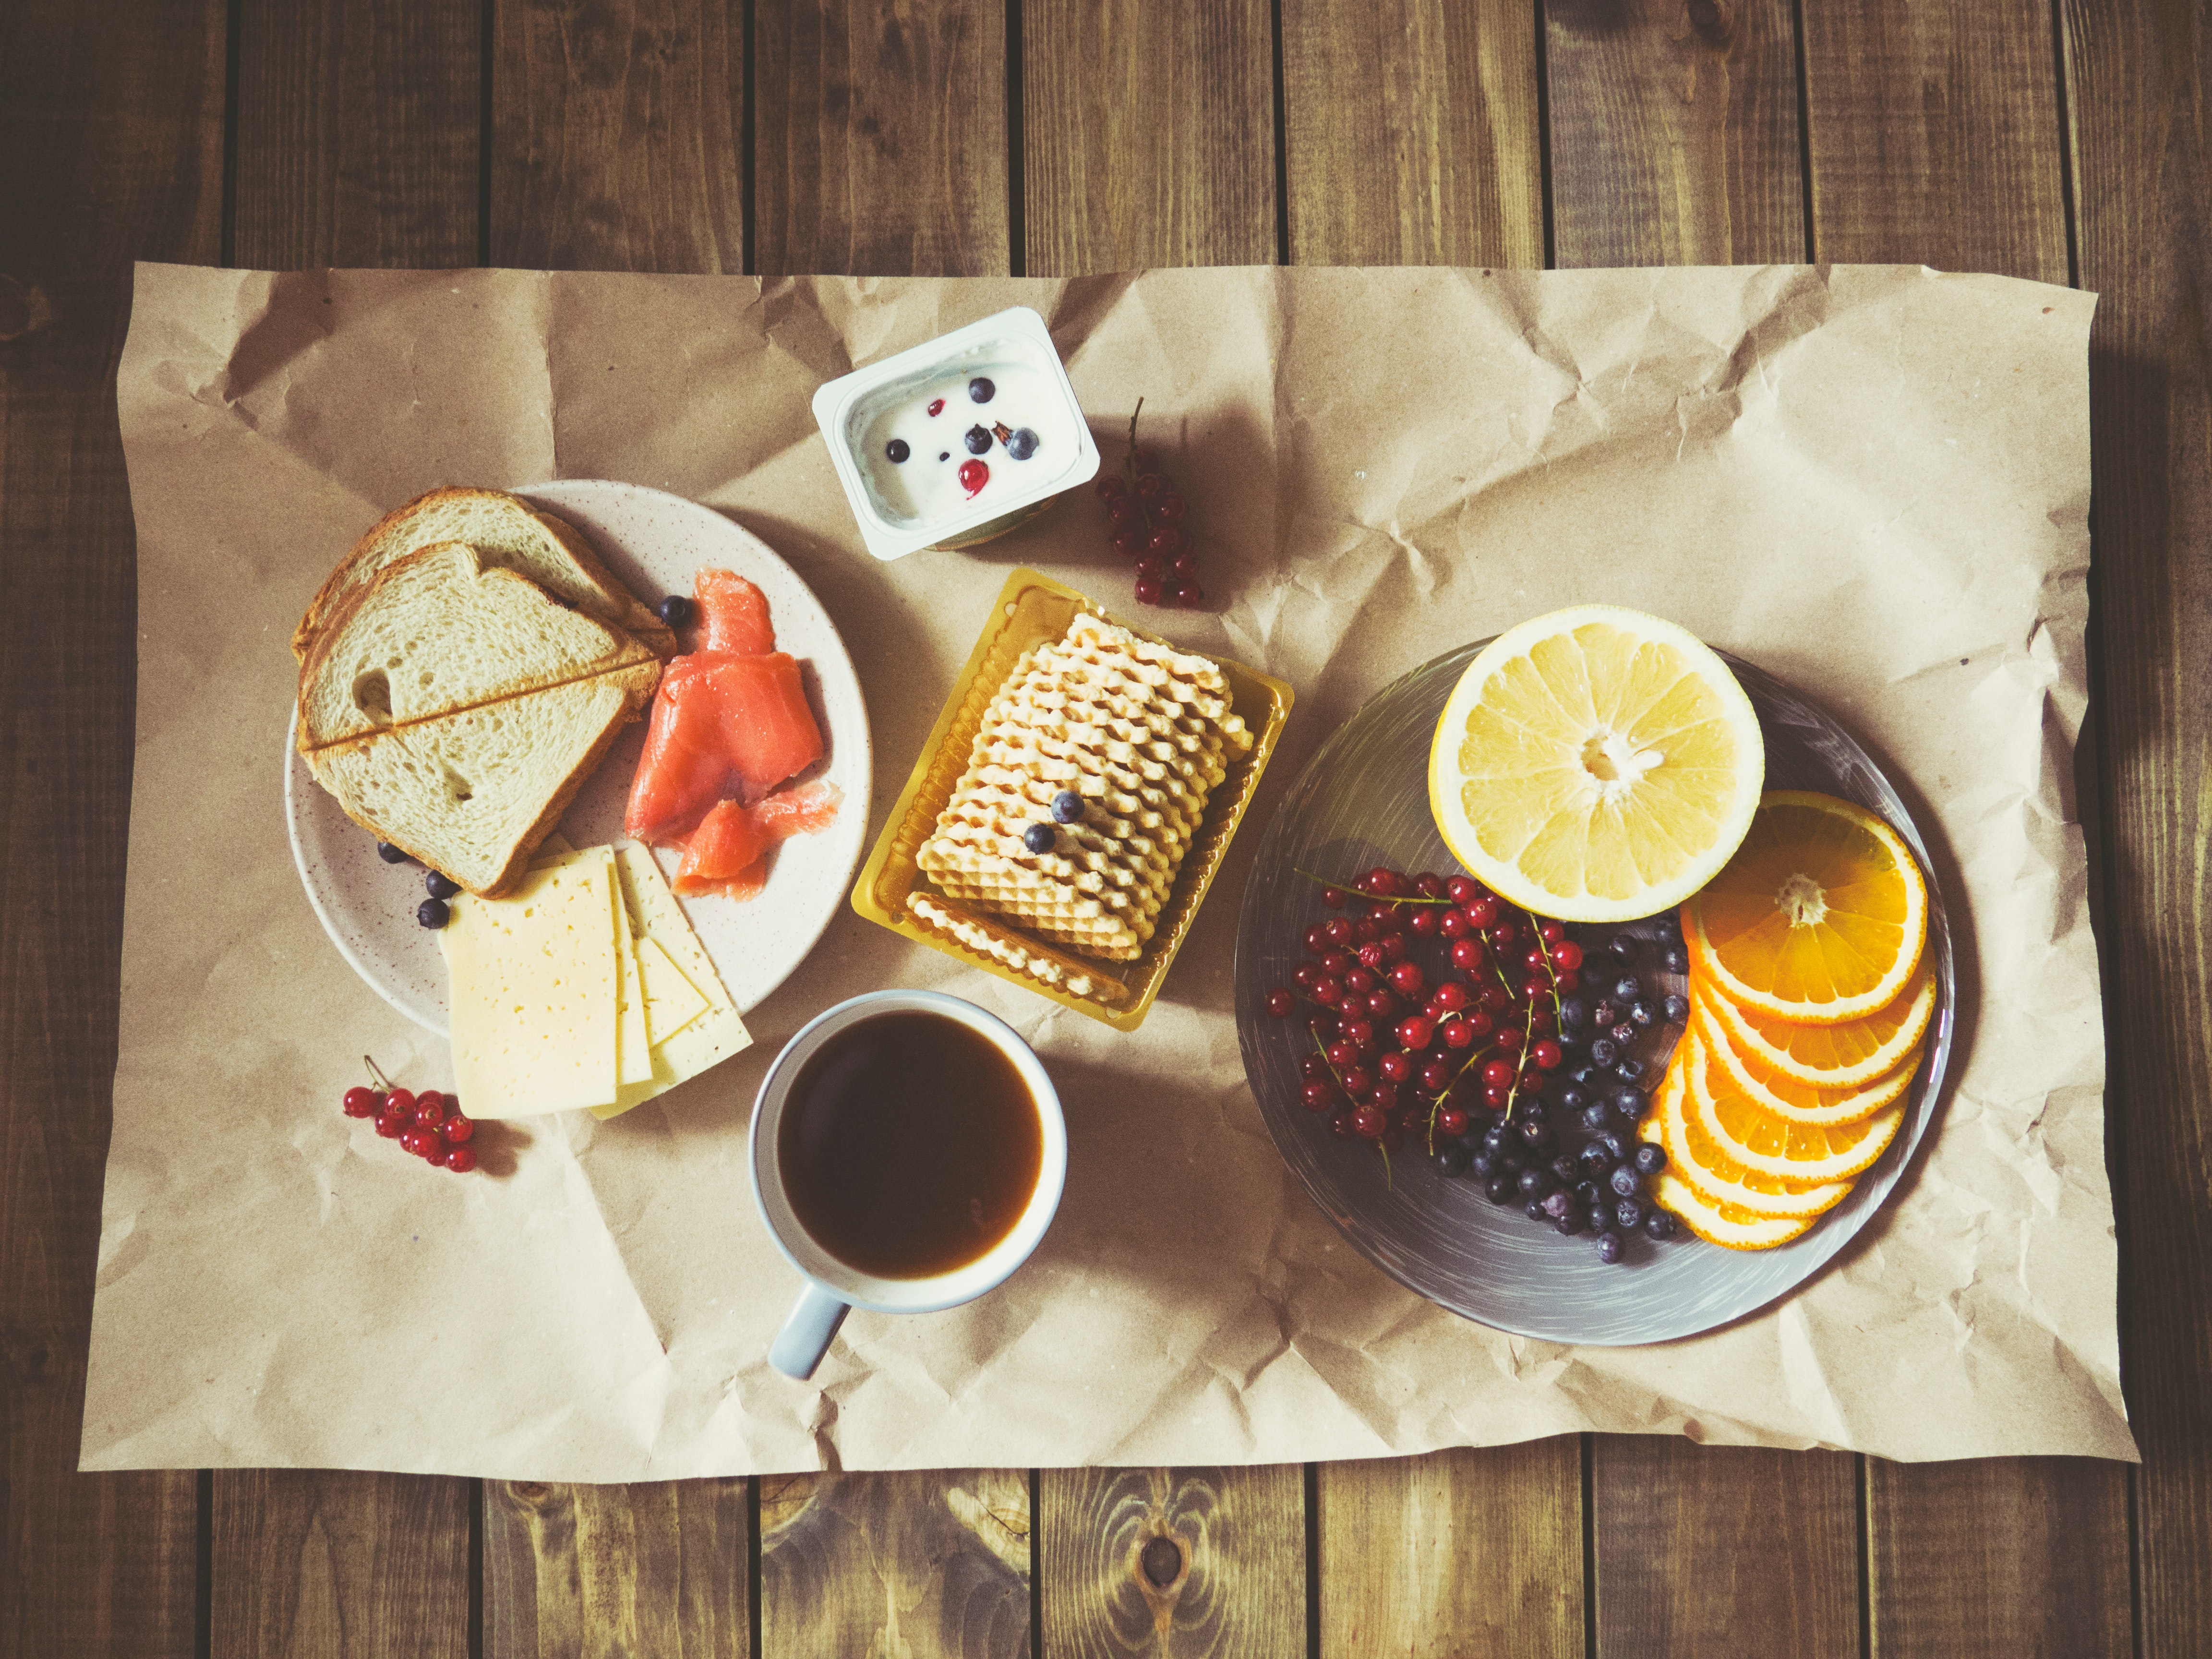 SmartBreakfast: New Food Products for Innovative Home Appliances